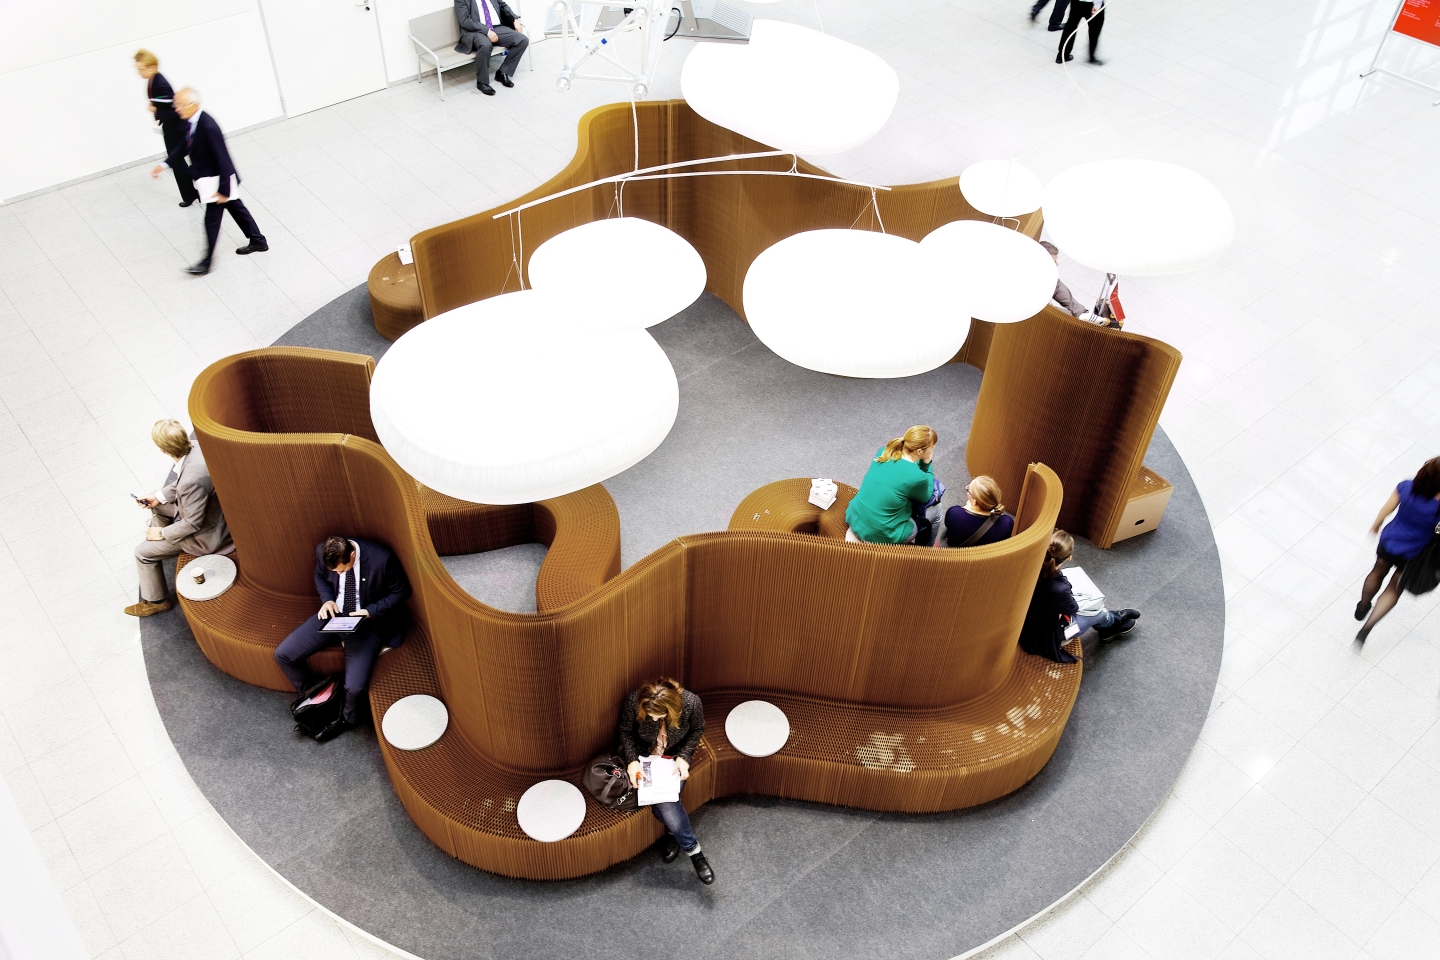 modular wall partitions, paper seating illuminate by its cloud lighting - accordion paper furniture by molo